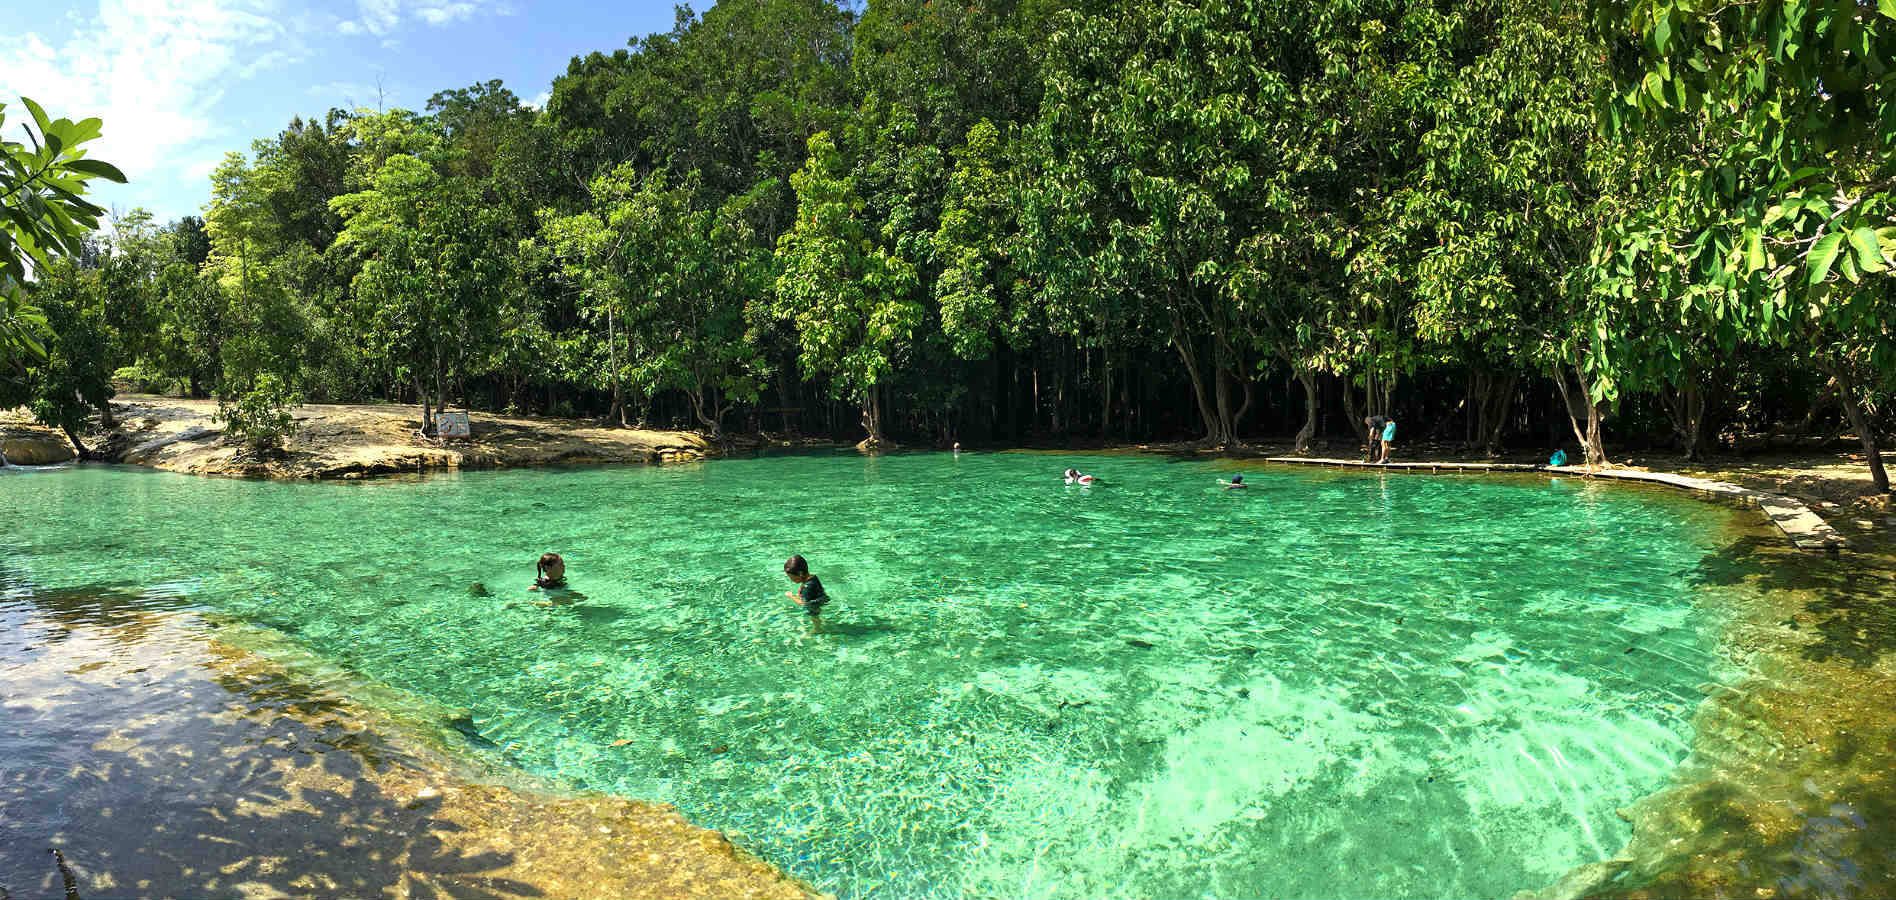 2 people in the water of the Emerald Pool surrounded by jungle